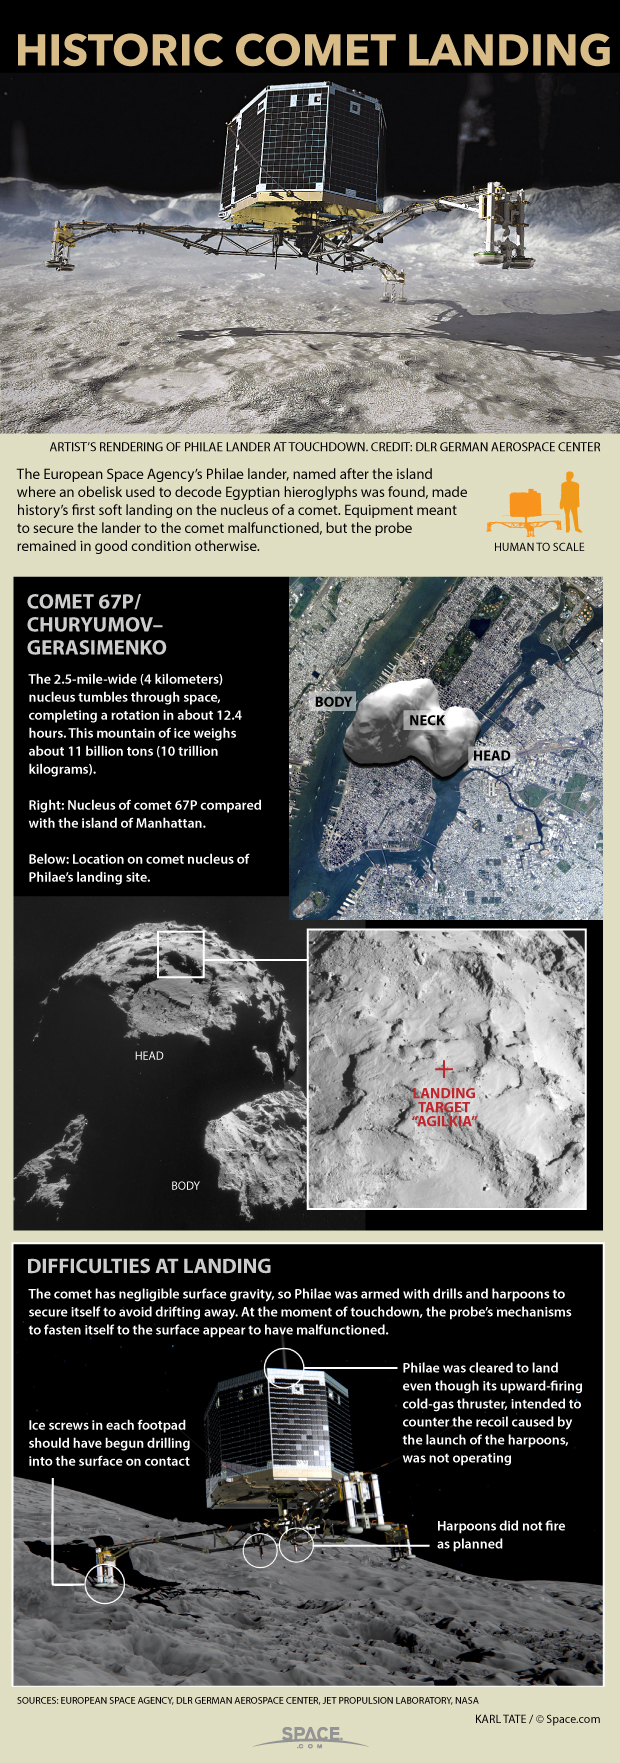 Diagrams show how lander touches down on a comet nucleus.